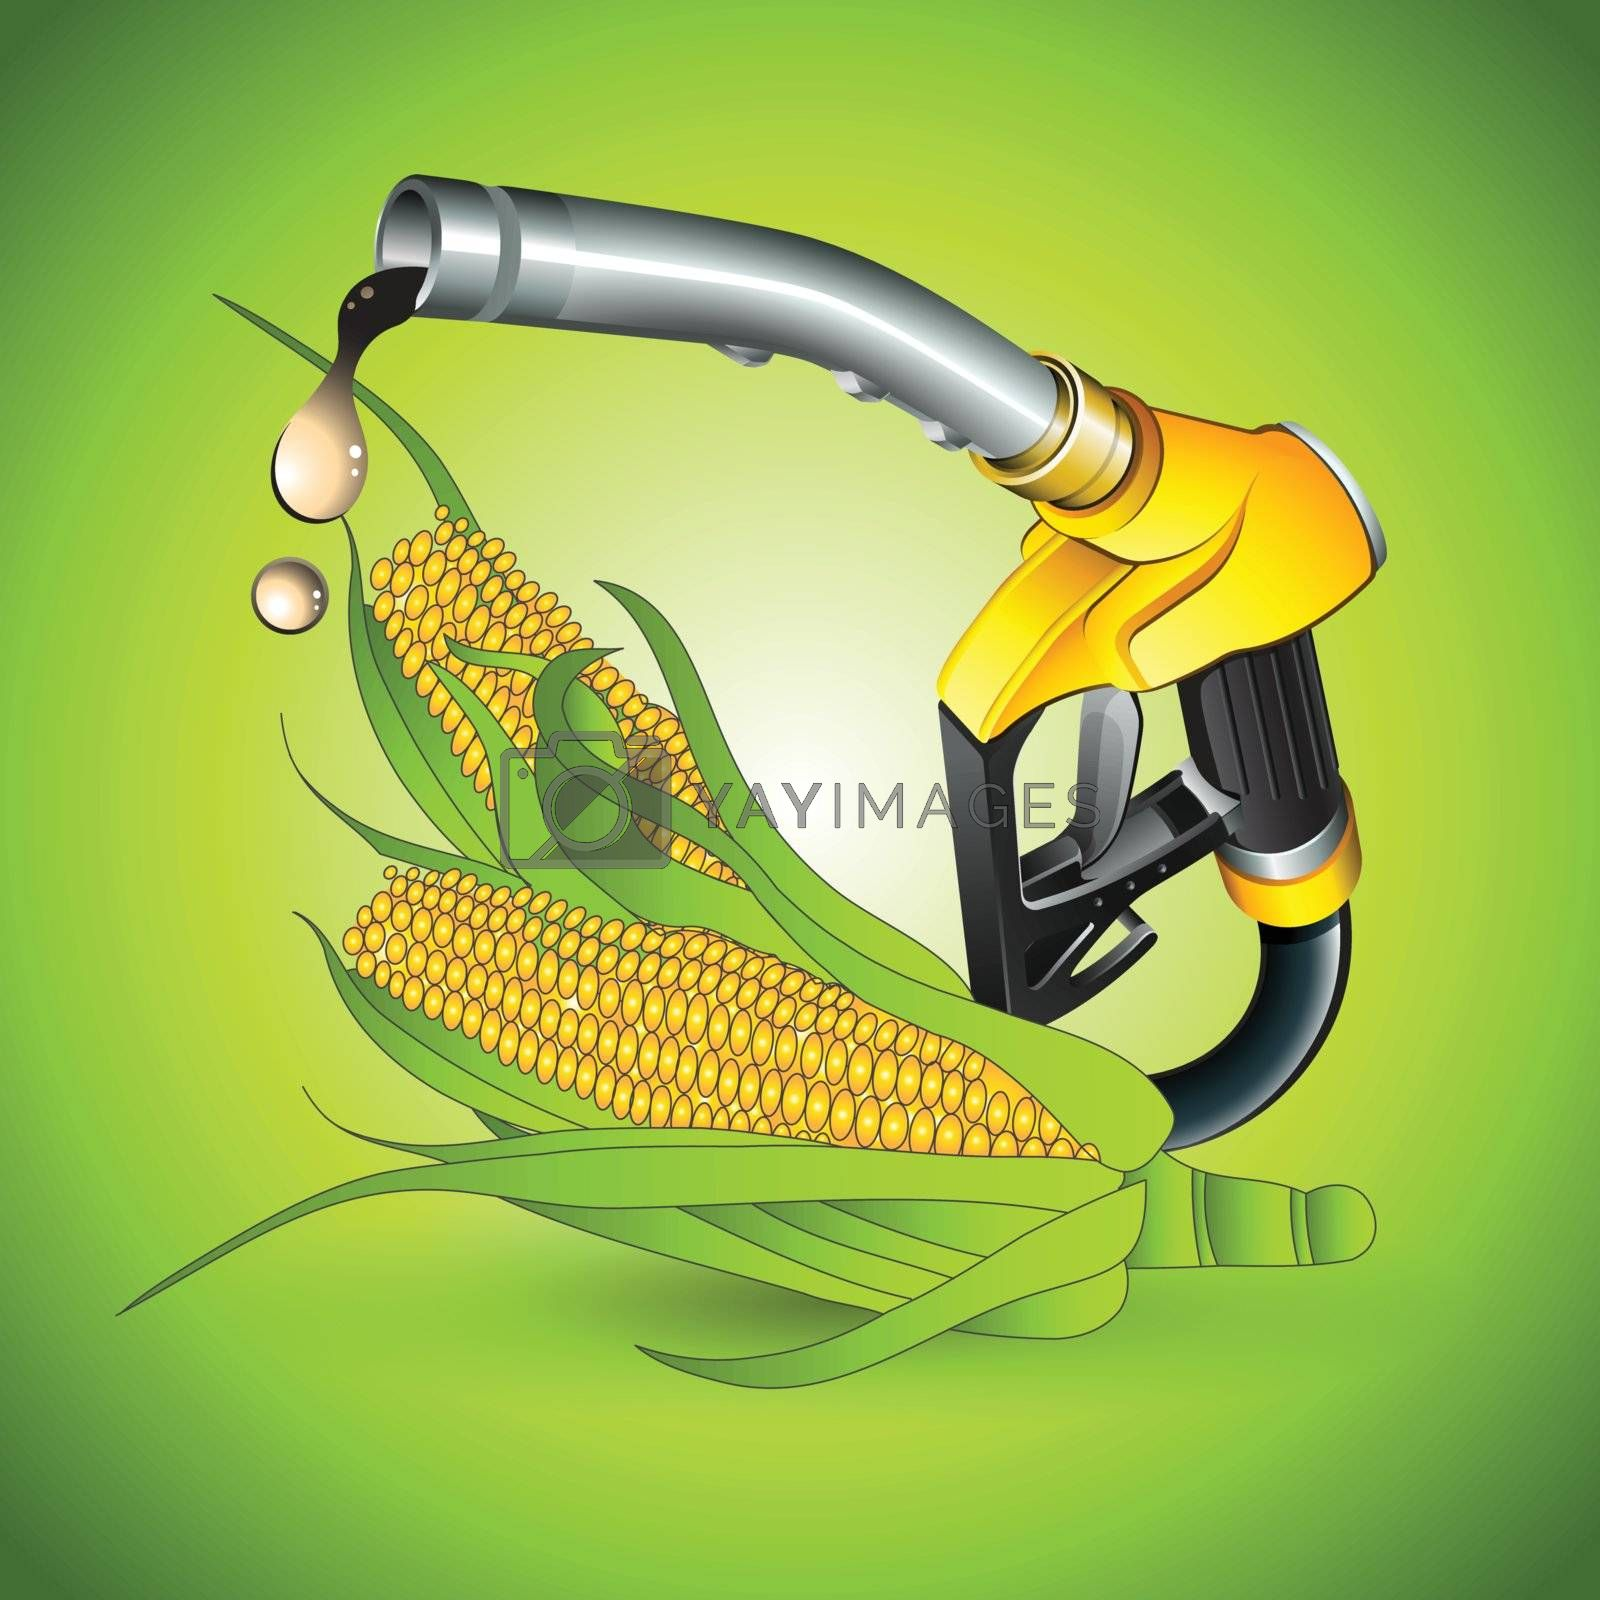 bio concept fuel from corn by nirots